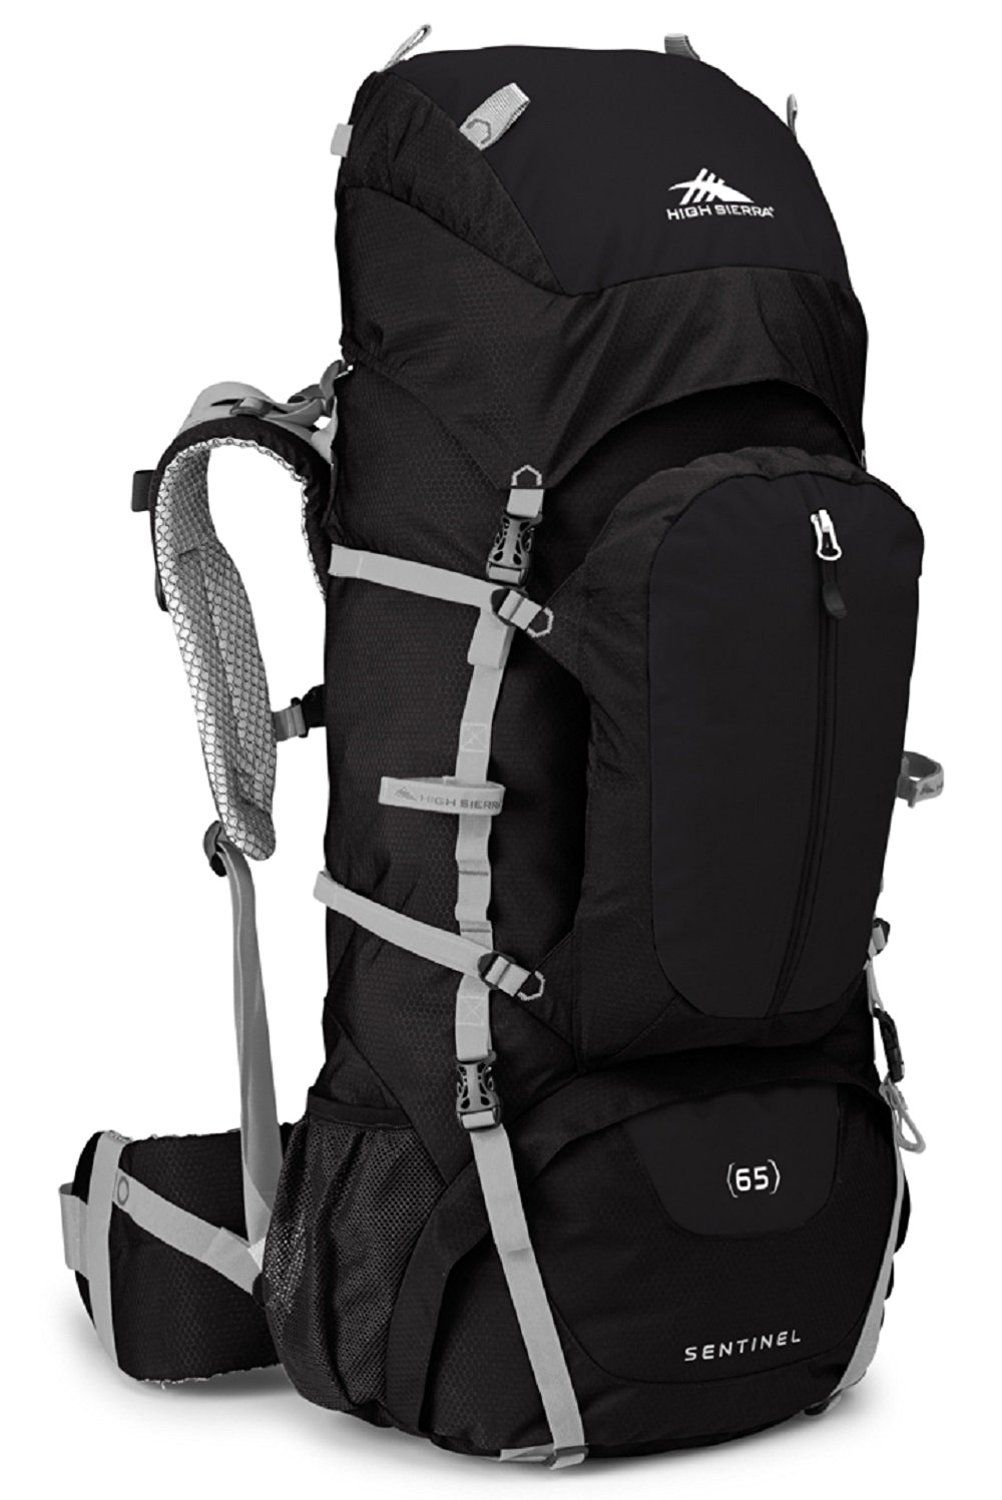 High Sierra Sentinel 65 Backpacking Pack    Details can be found by  clicking on the image. 4c72da2c339a4